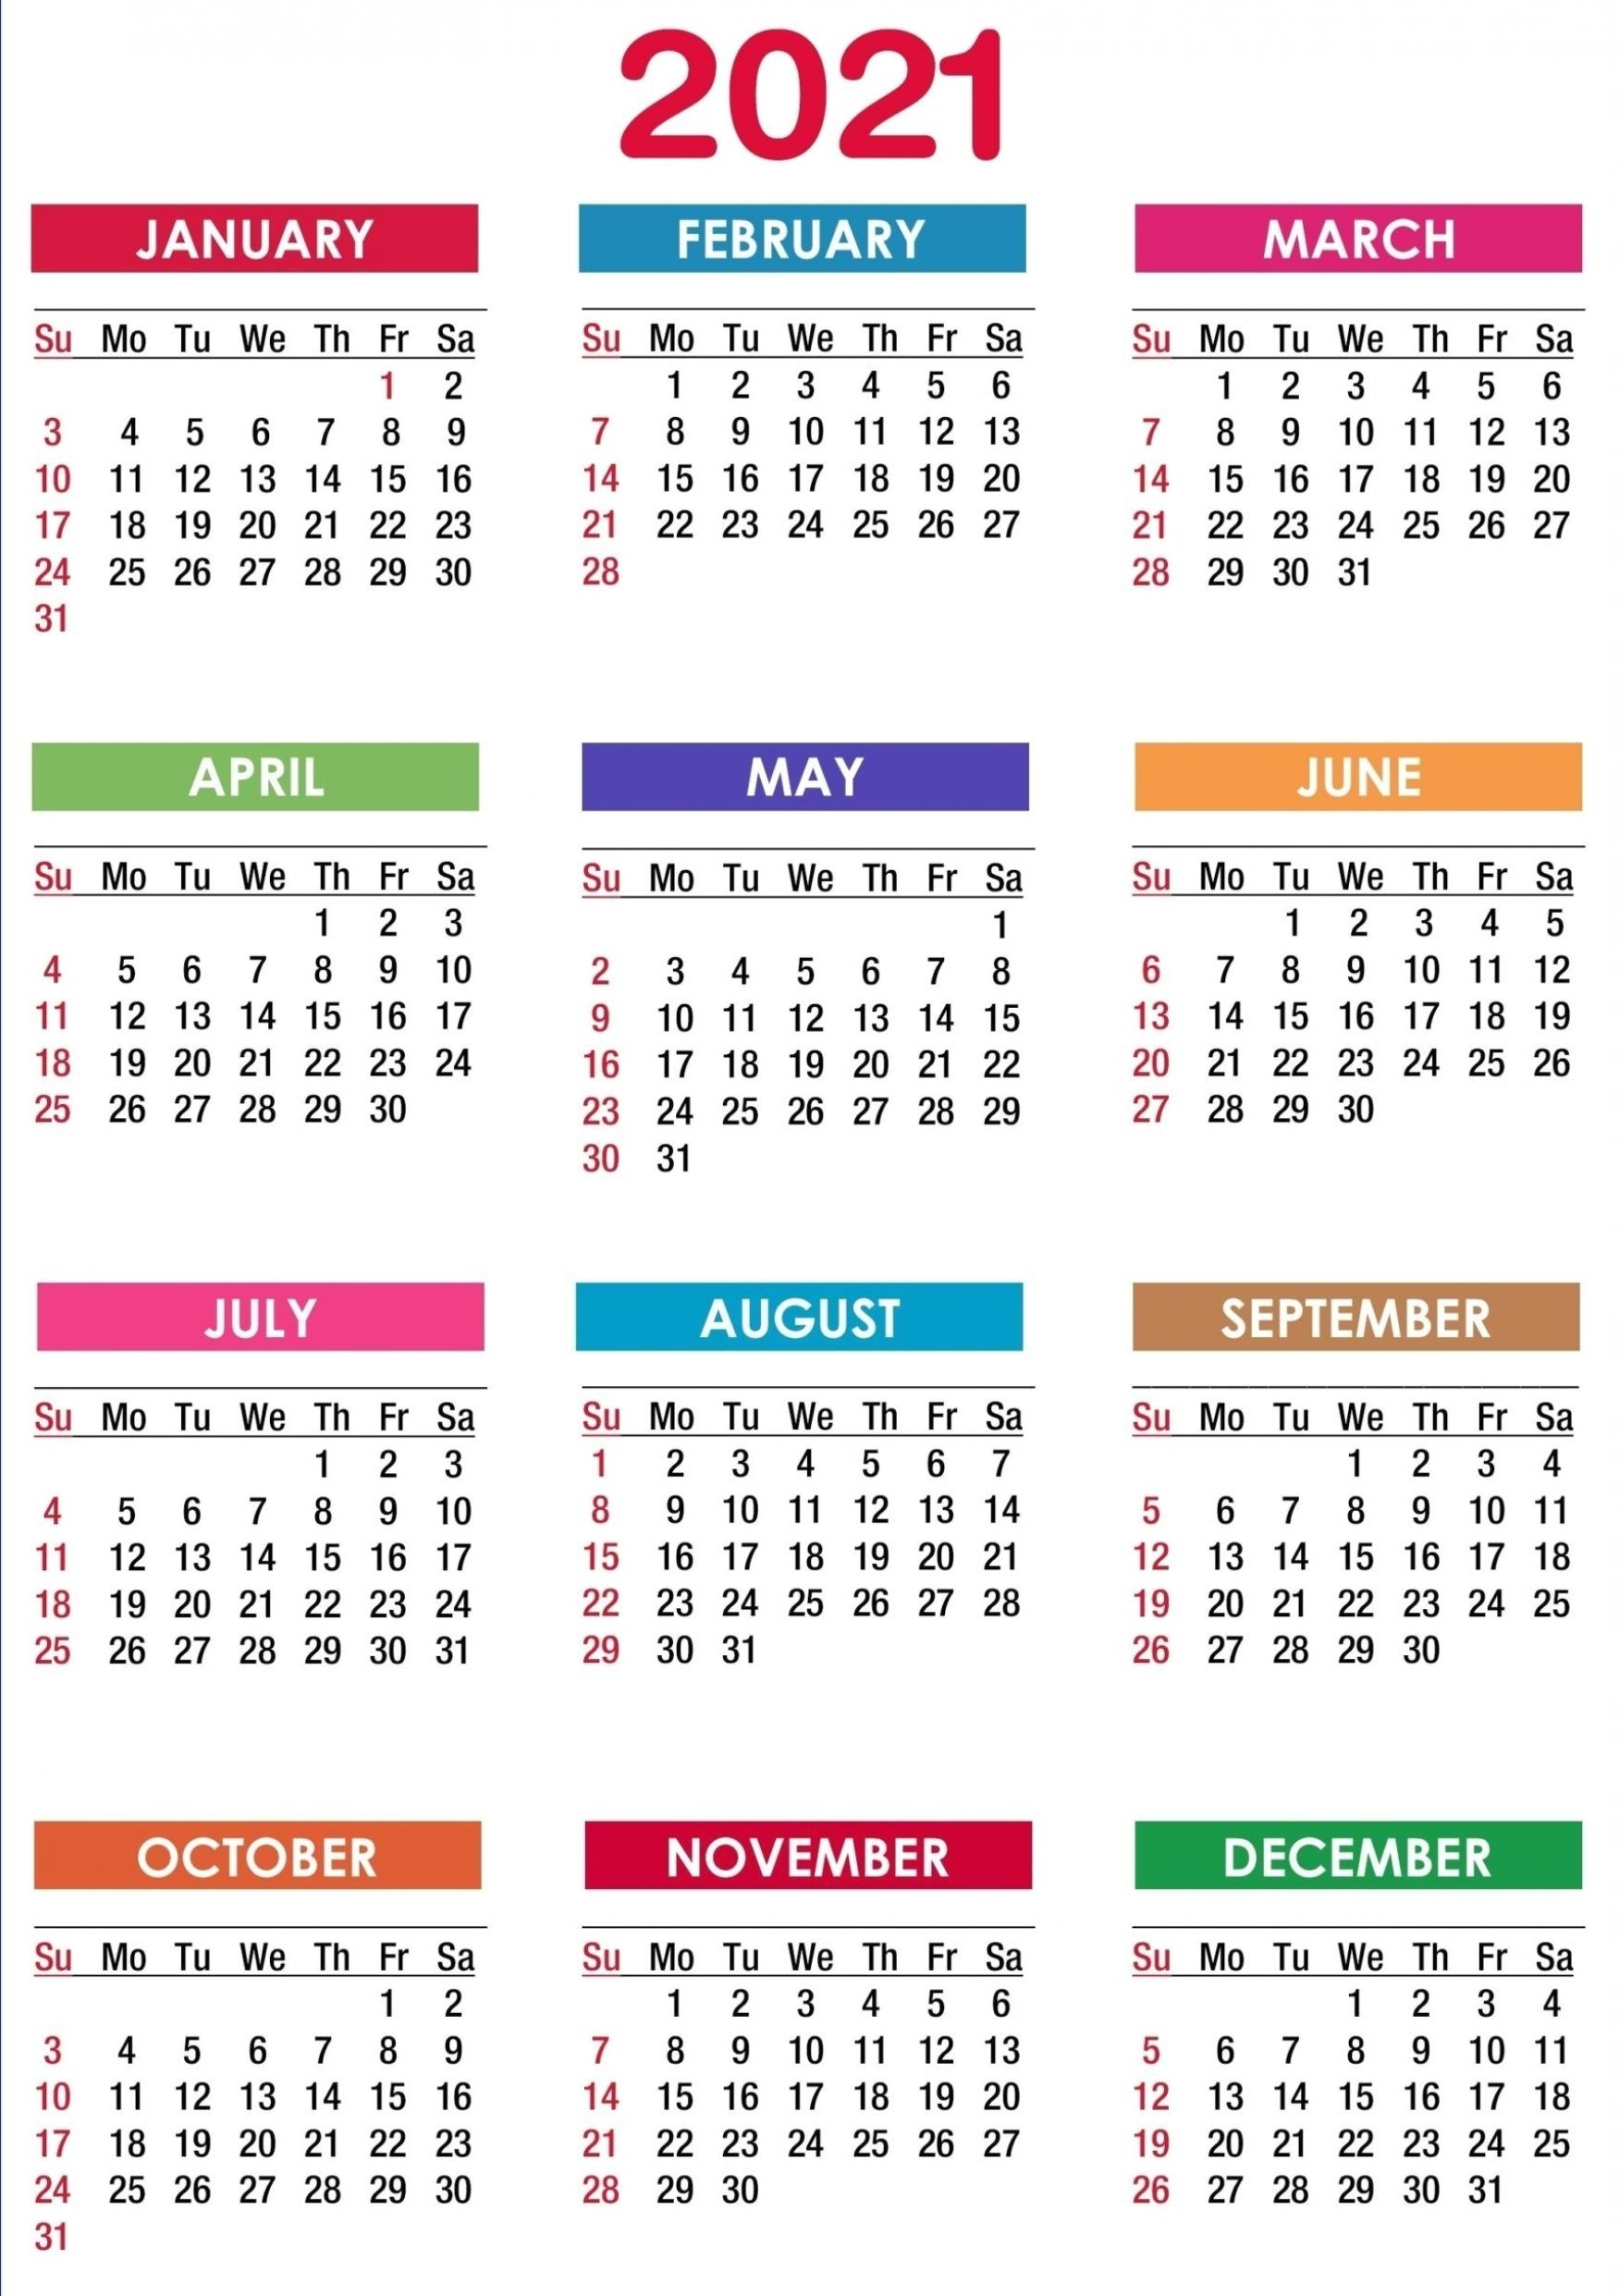 2021 Calendar Printable | 12 Months All In One In 2020 inside Calendar 2021 All Months